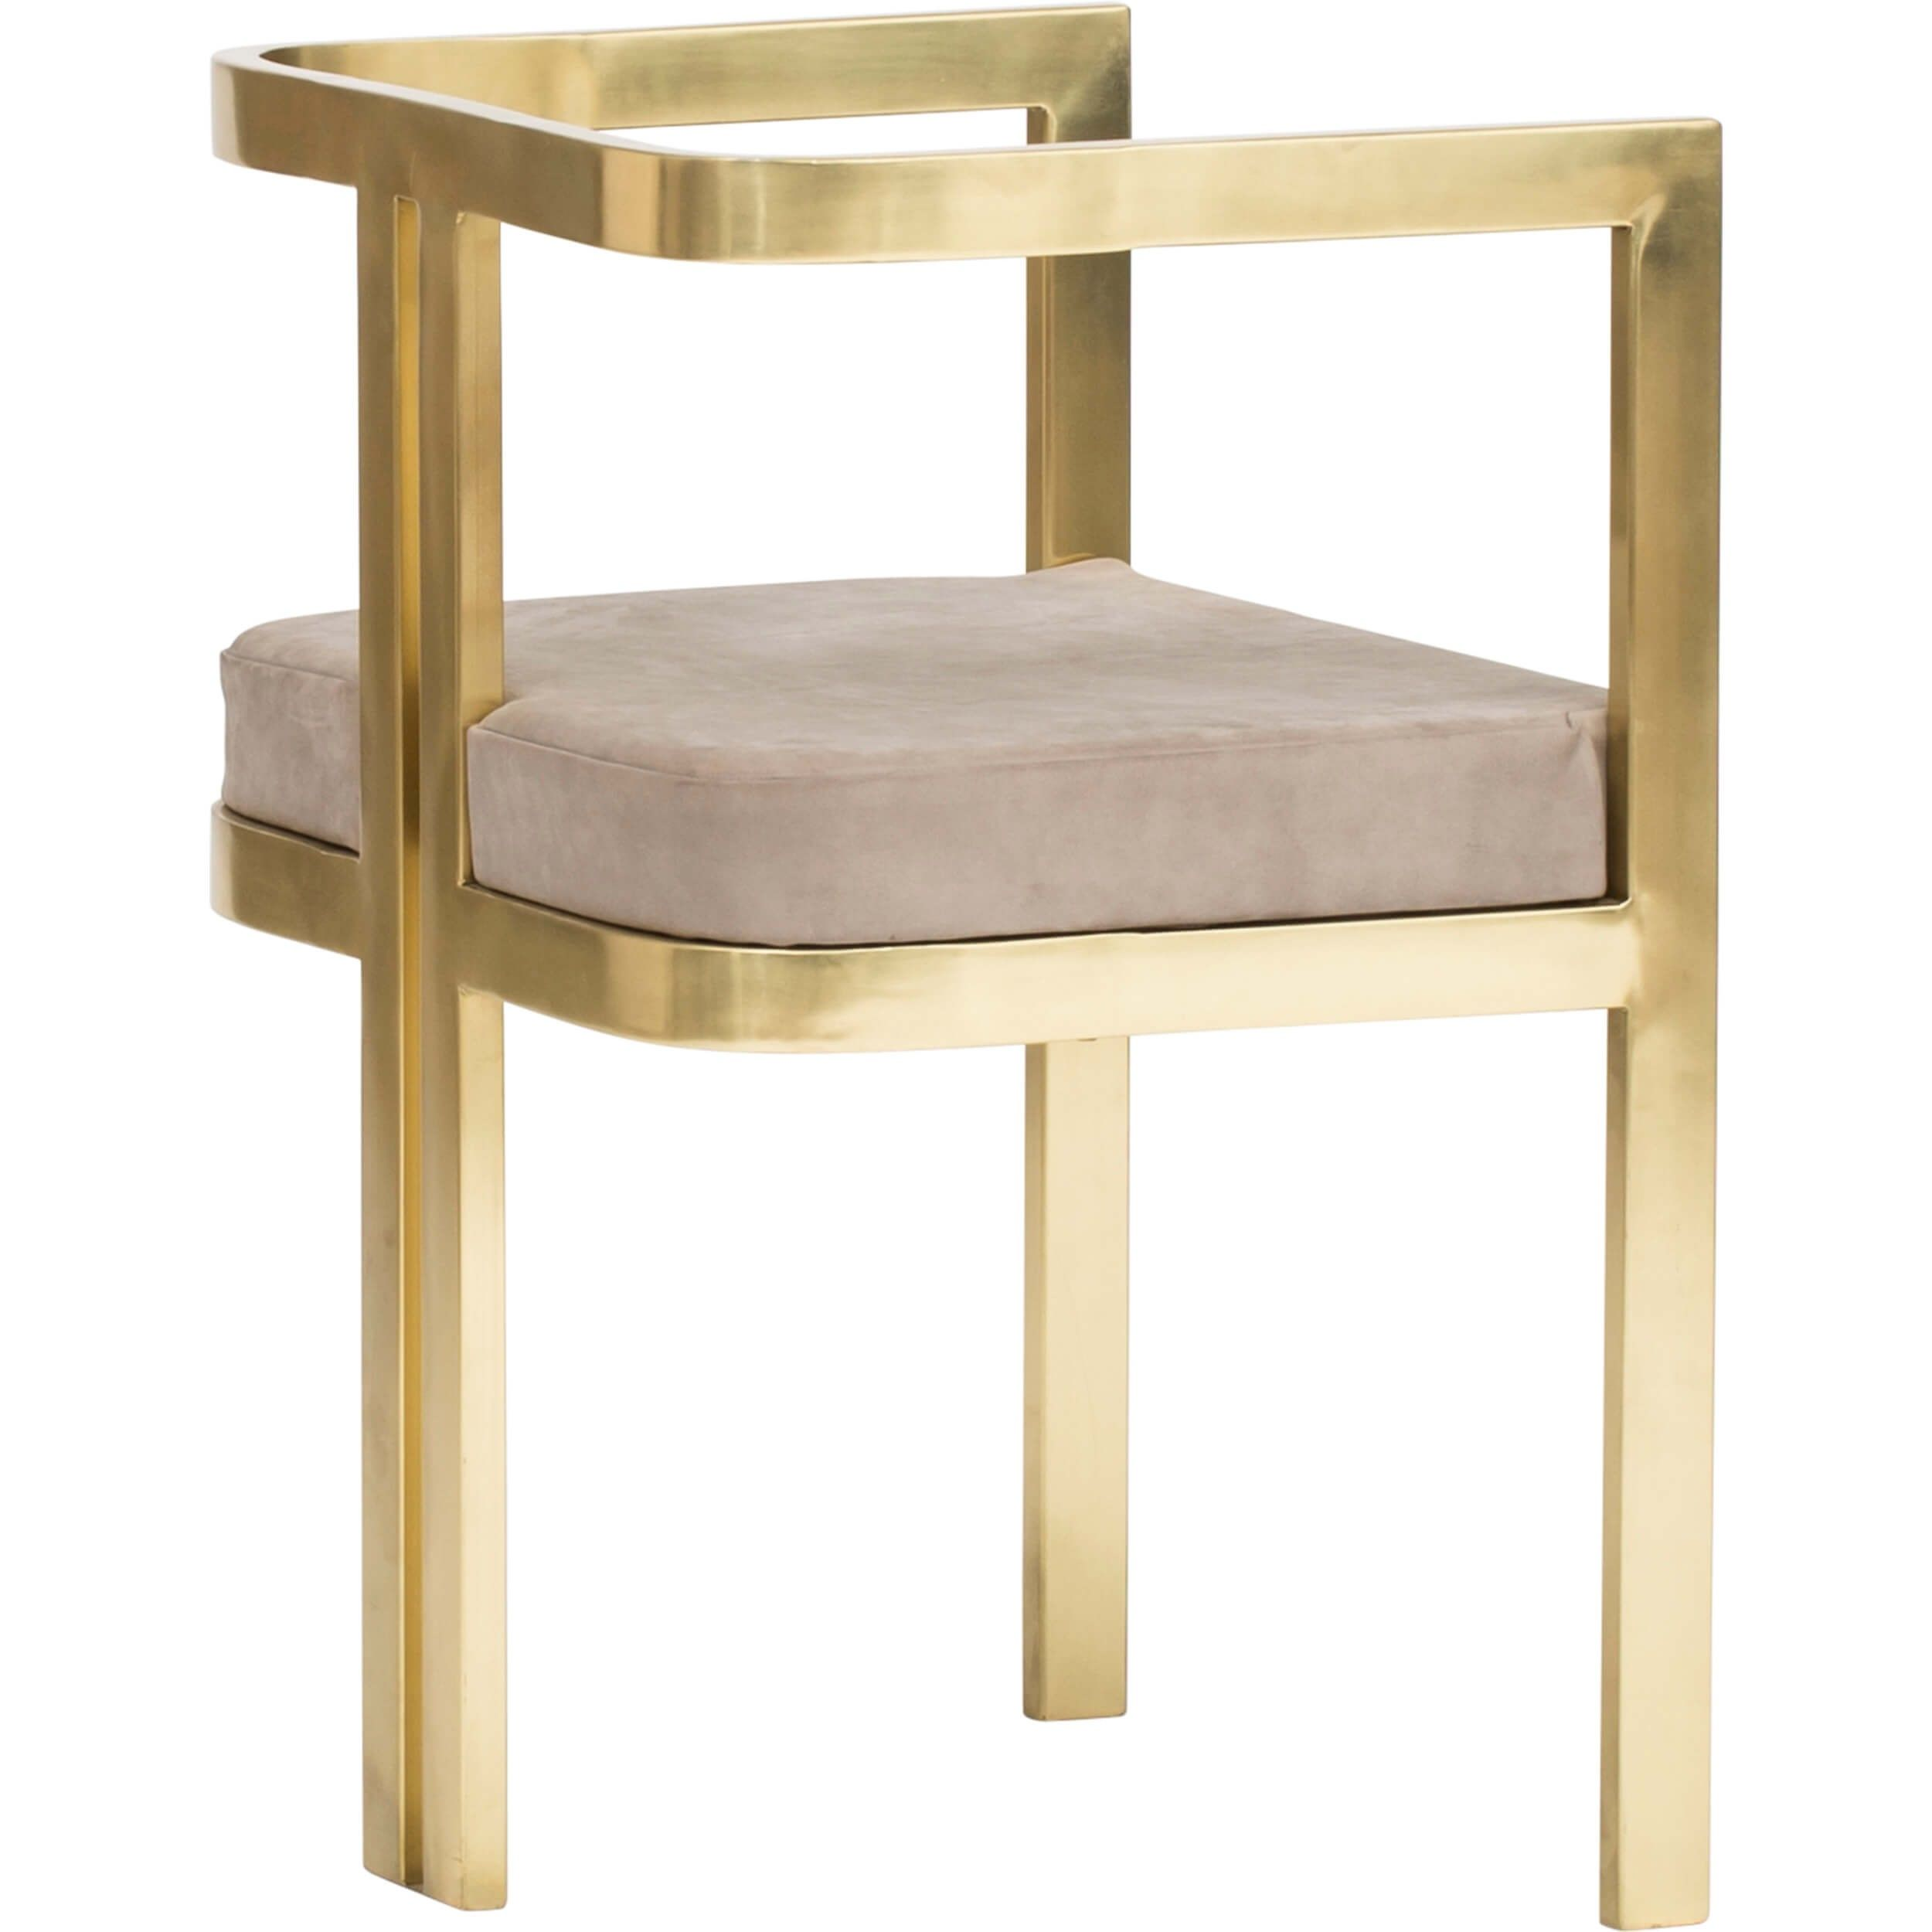 Prime Pepin Dining Chair In 2019 Dining Chairs Dining Chairs Spiritservingveterans Wood Chair Design Ideas Spiritservingveteransorg